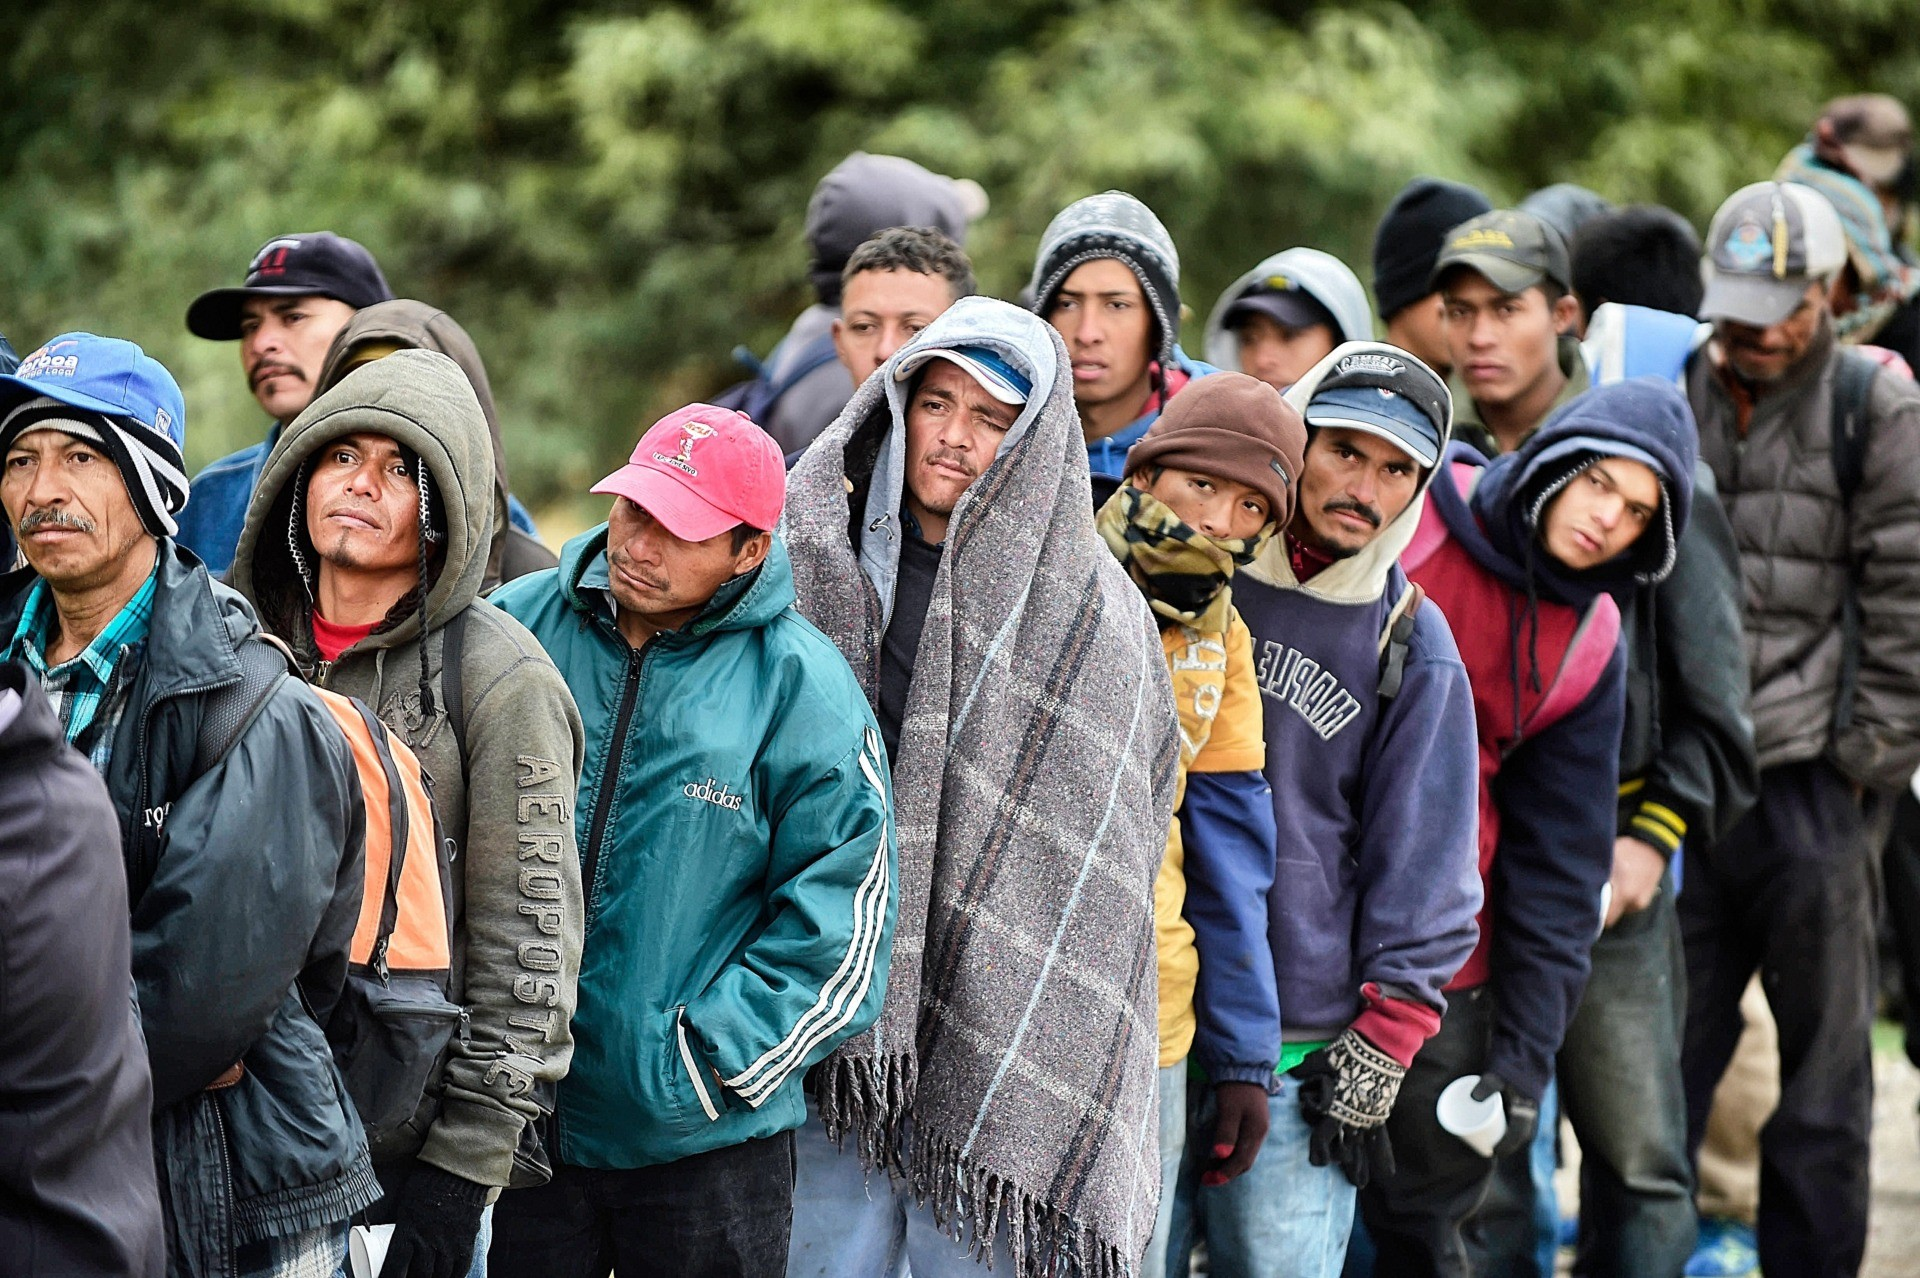 TOPSHOT - Migrants wait to receive food donated by people from the Community Center for Migrant Assistance in the community of Caborca in Sonora state, Mexico, on January 13, 2017. Hundreds of Central American and Mexican migrants attempt to cross the US border daily. / AFP PHOTO / ALFREDO ESTRELLA (Photo credit should read ALFREDO ESTRELLA/AFP via Getty Images)